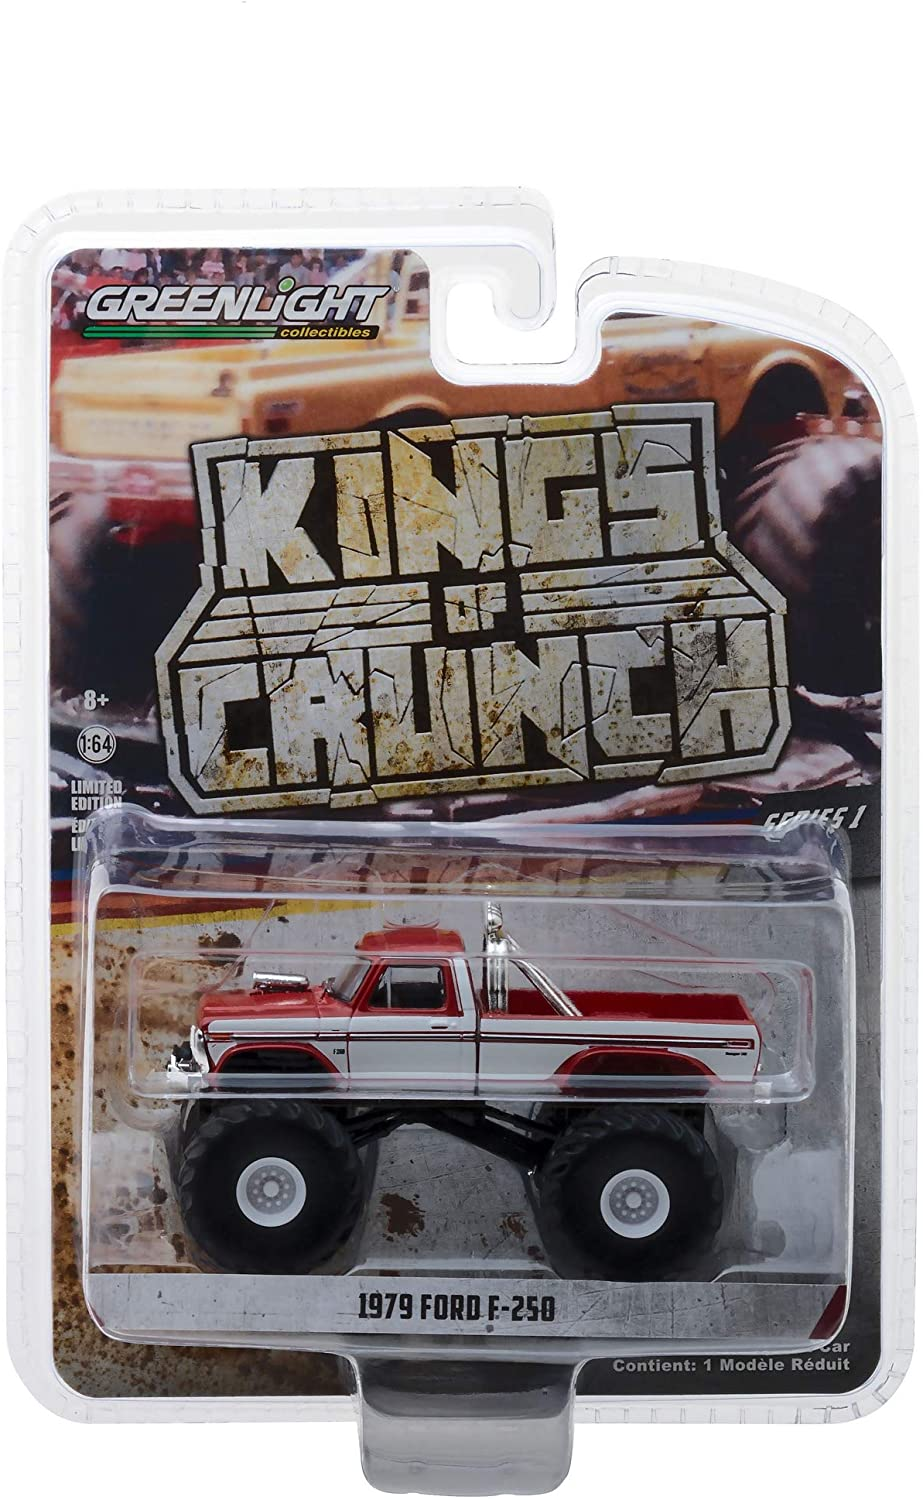 1979 Ford F-250 Monster Truck Red with White Sides Kings of Crunch Series 1/64 Diecast Model Car by Greenlight 49010 E